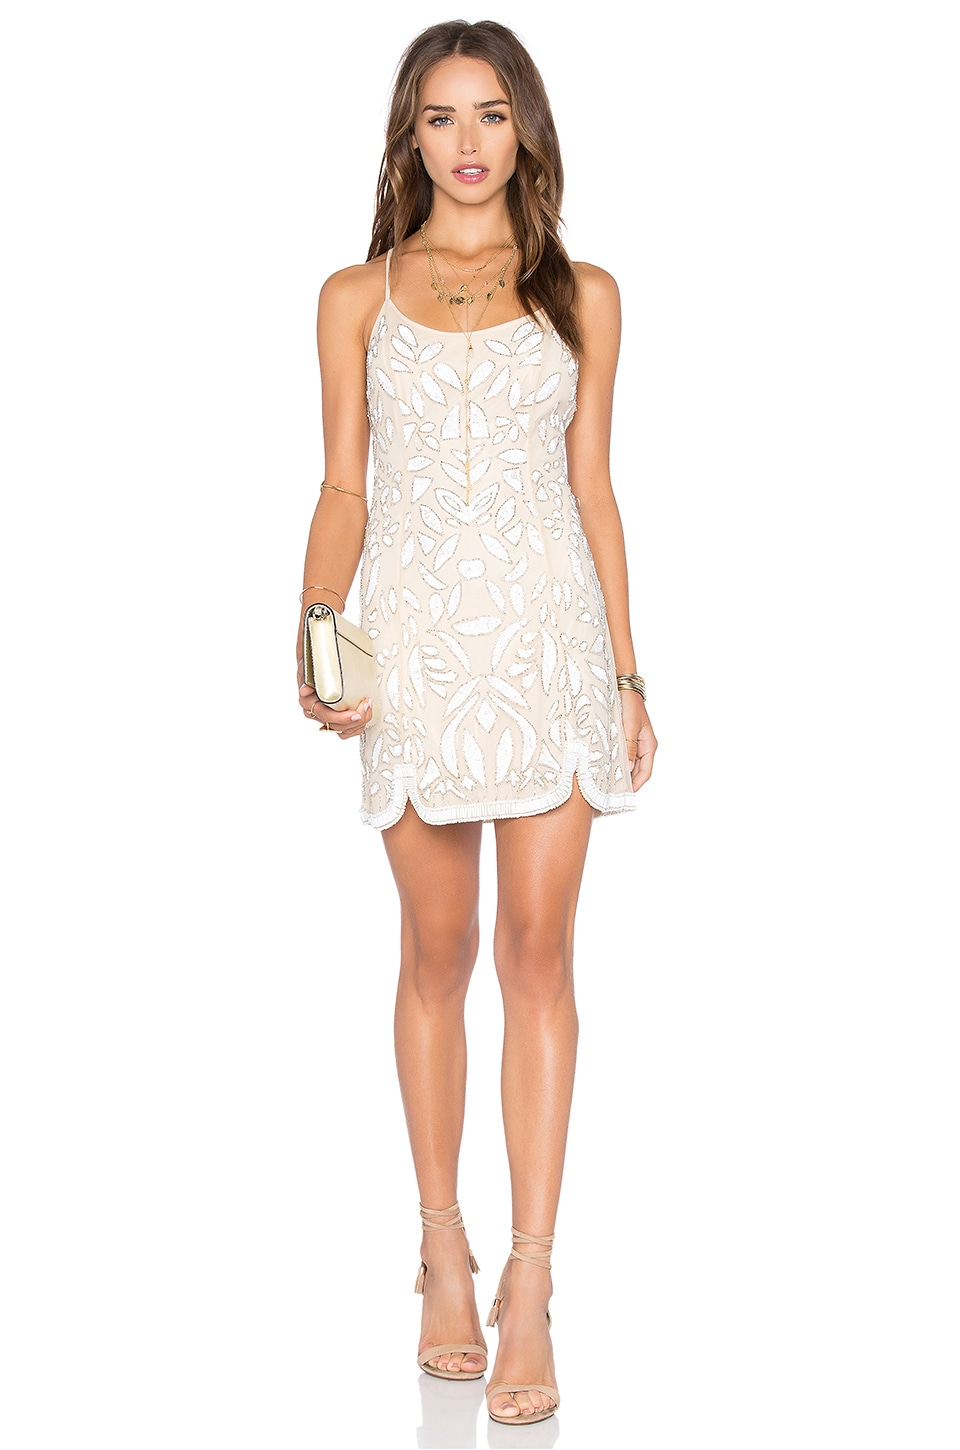 X by NBD Madeline Dress in Ivory